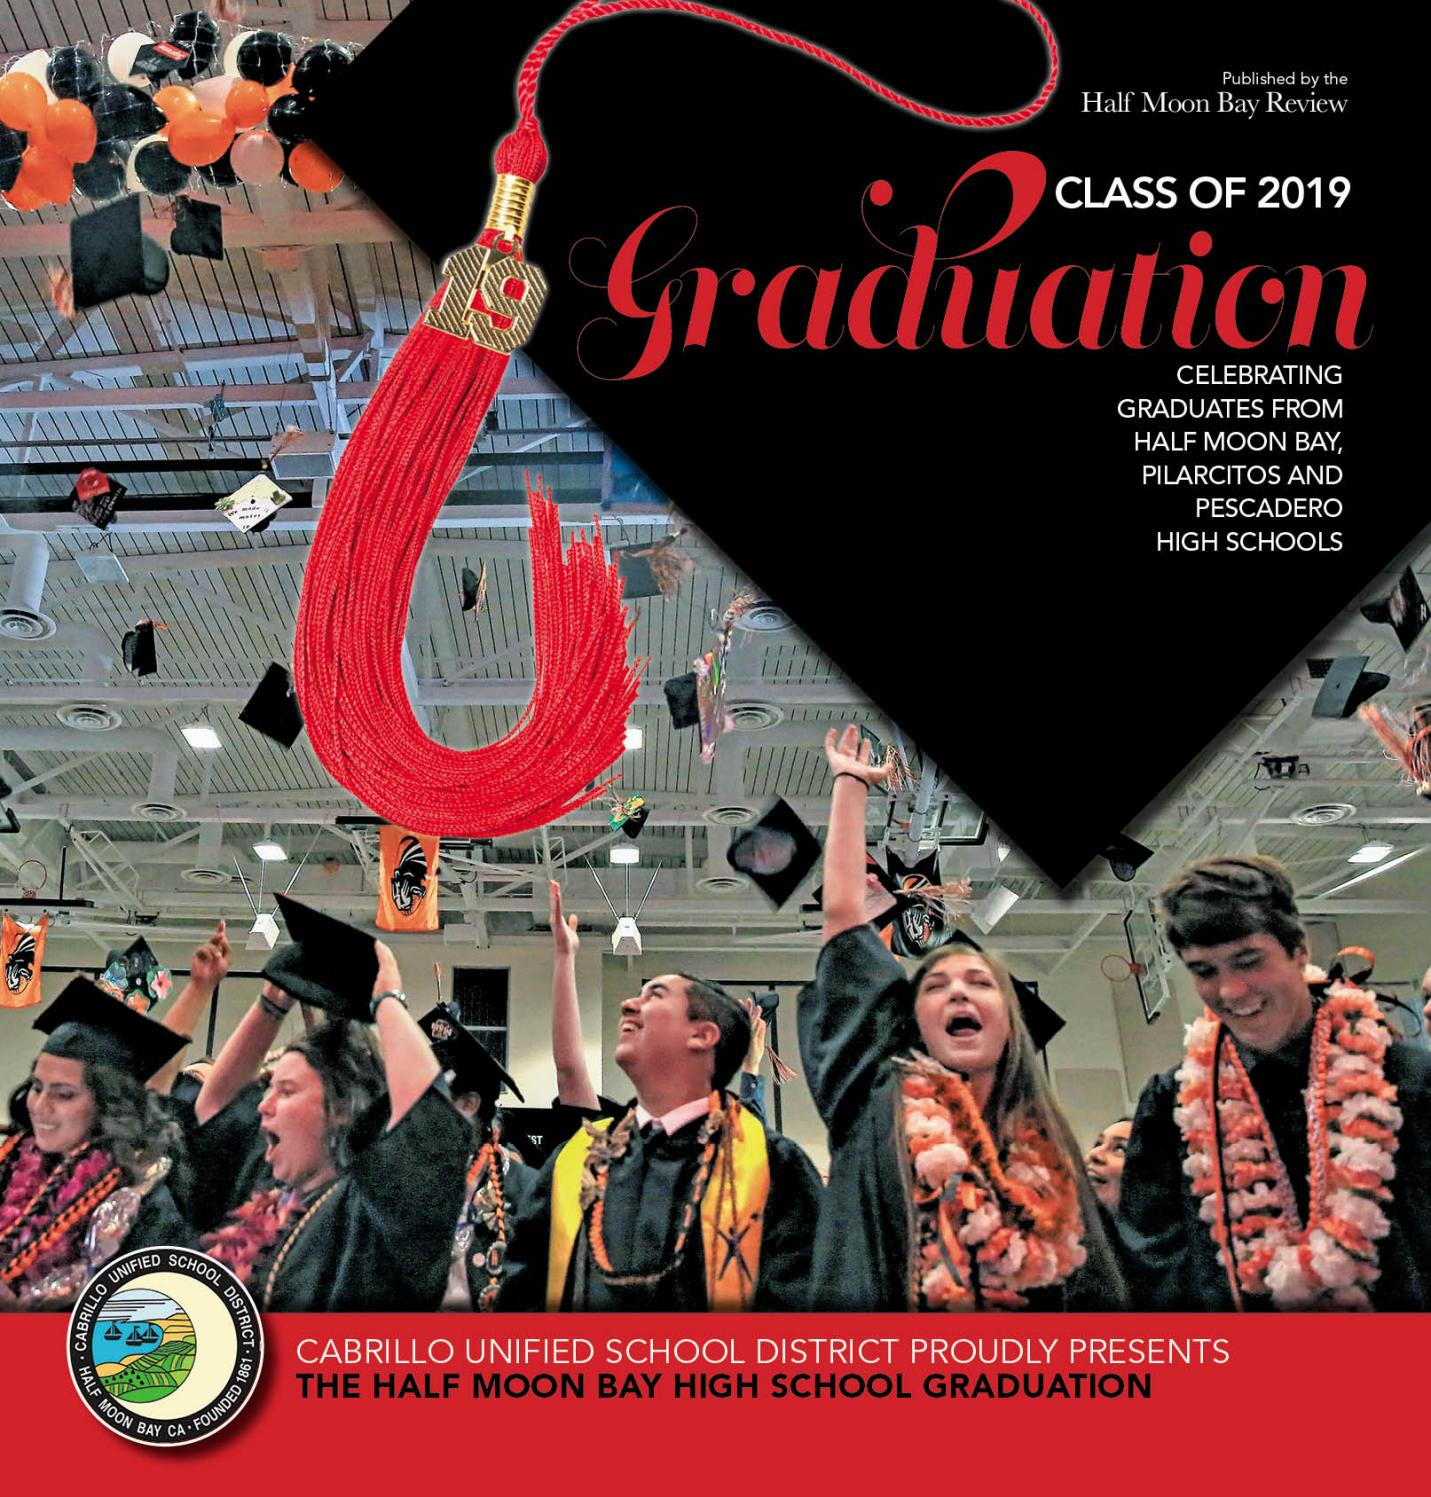 2019 Graduation - Cabrillo Unified School District by Wick